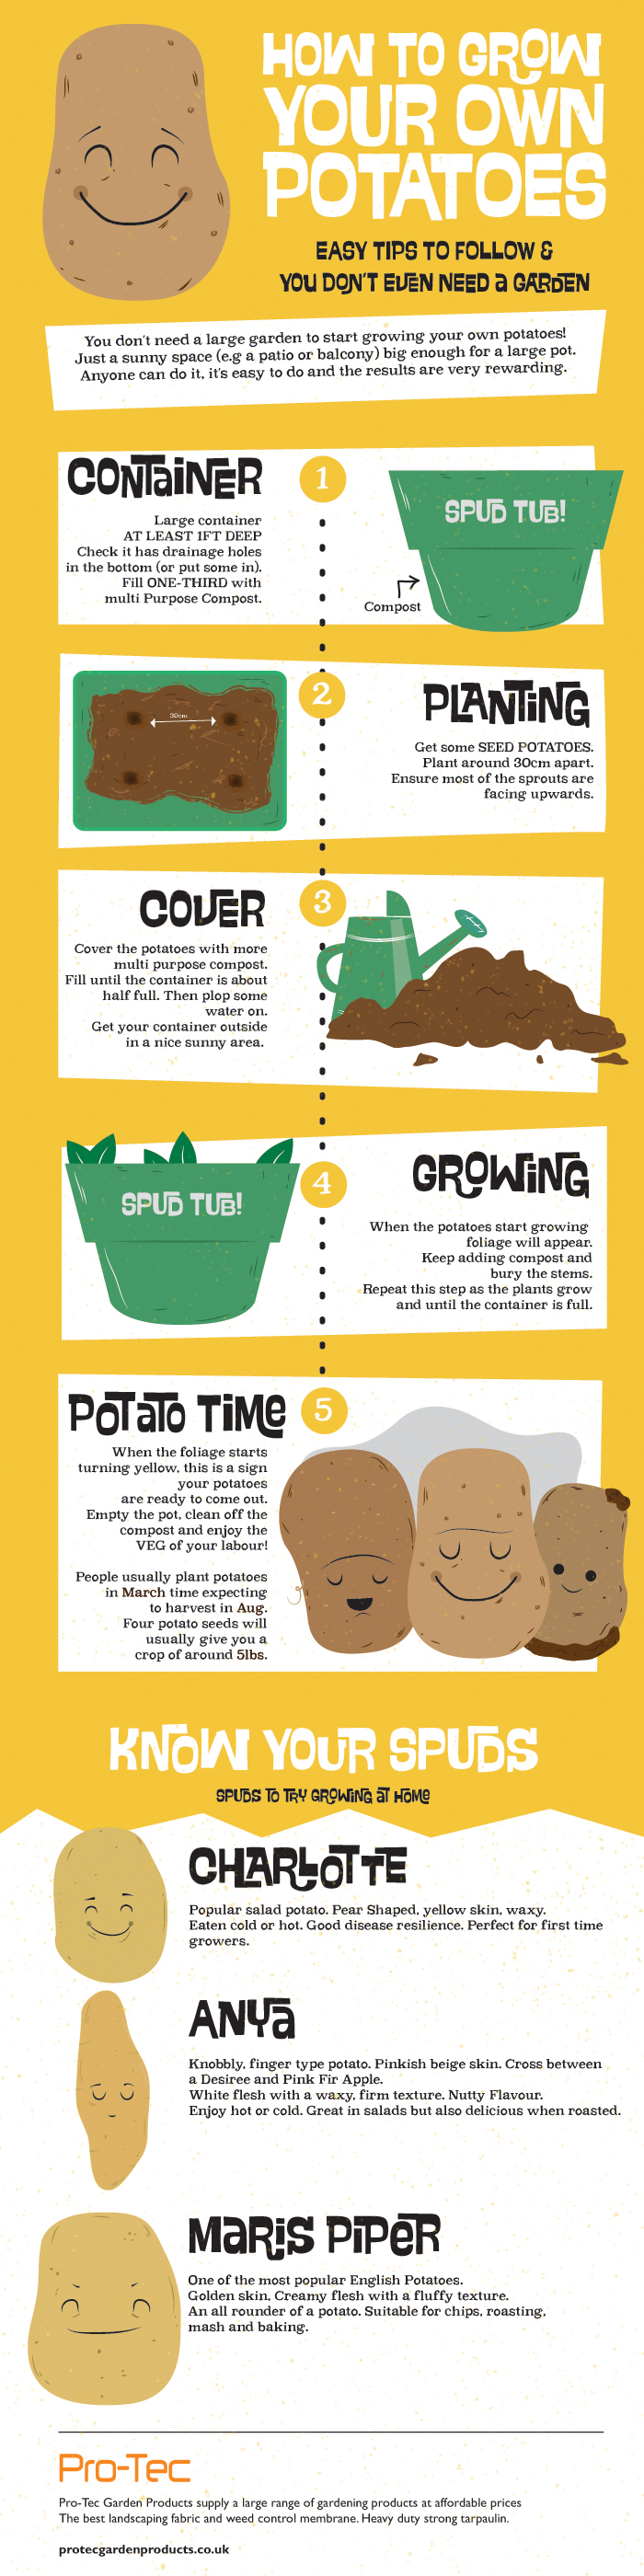 Infographic of How To Grow Your Own Potatoes